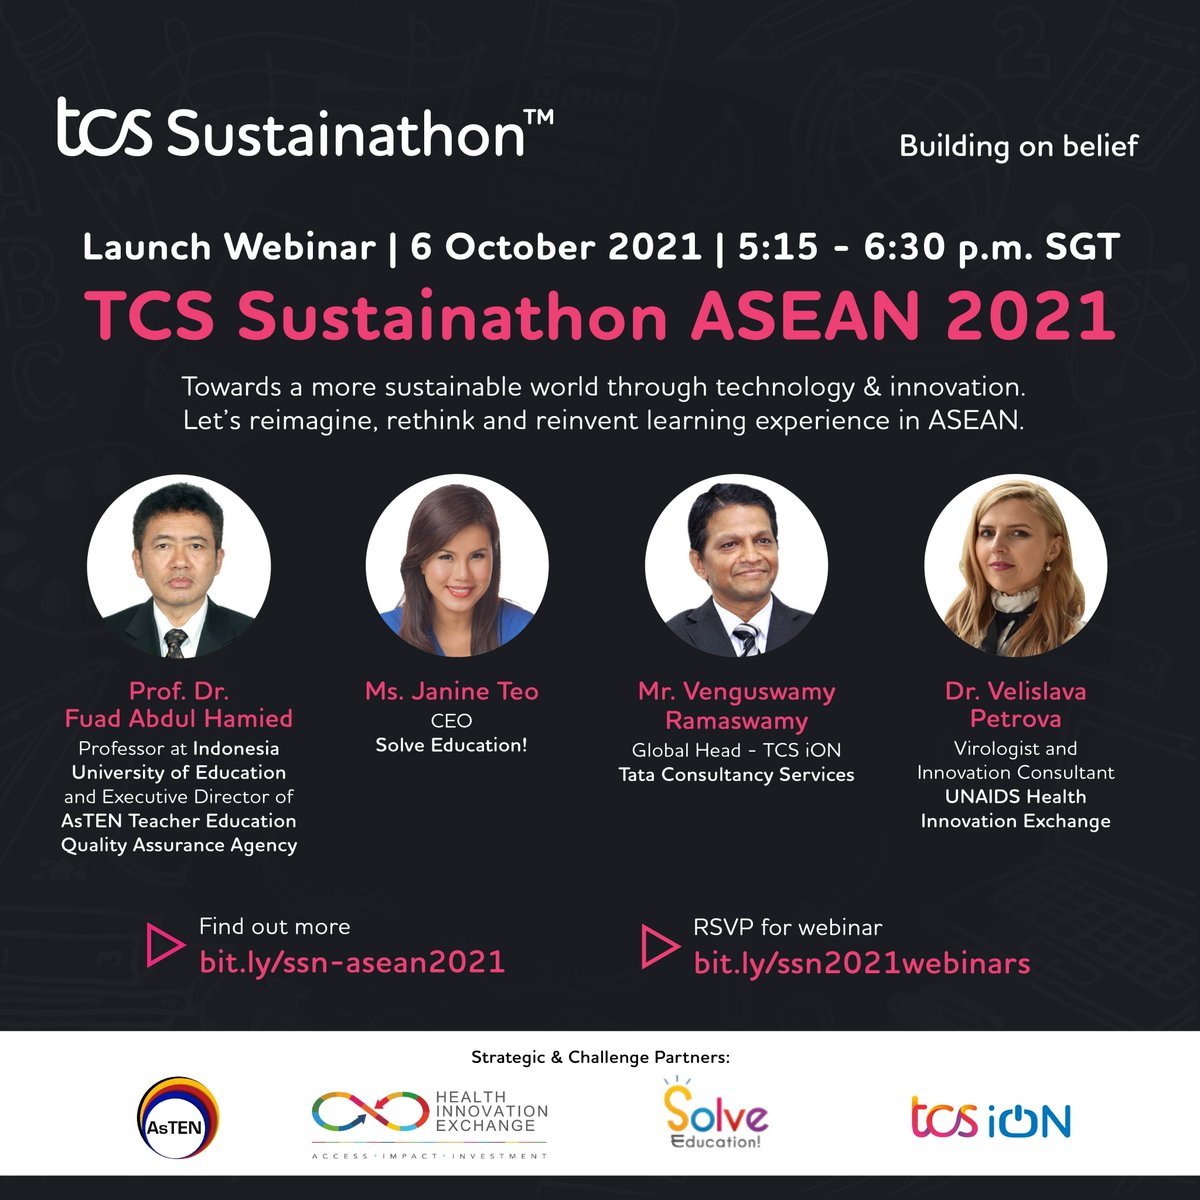 Join @veli_pet of @UNAIDSinno and this fantastic panel to discuss #sustainability & #technology Oct. 6th https://t.co/yy0pMjBvu7